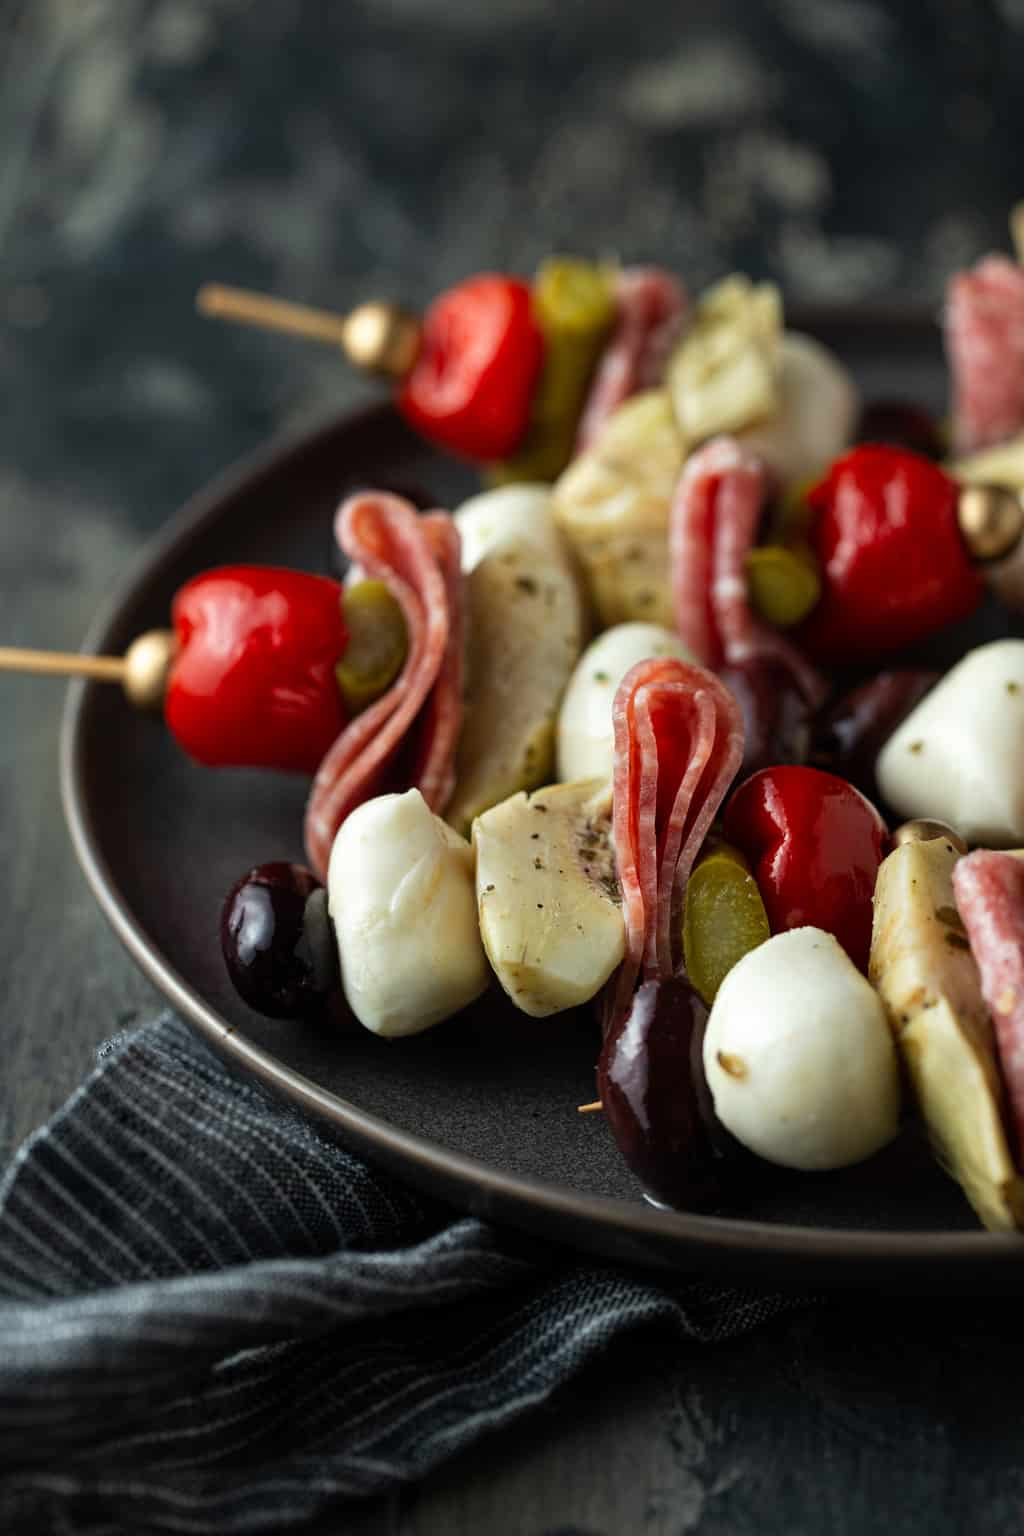 antipasto skewers on plate with gray napkin.